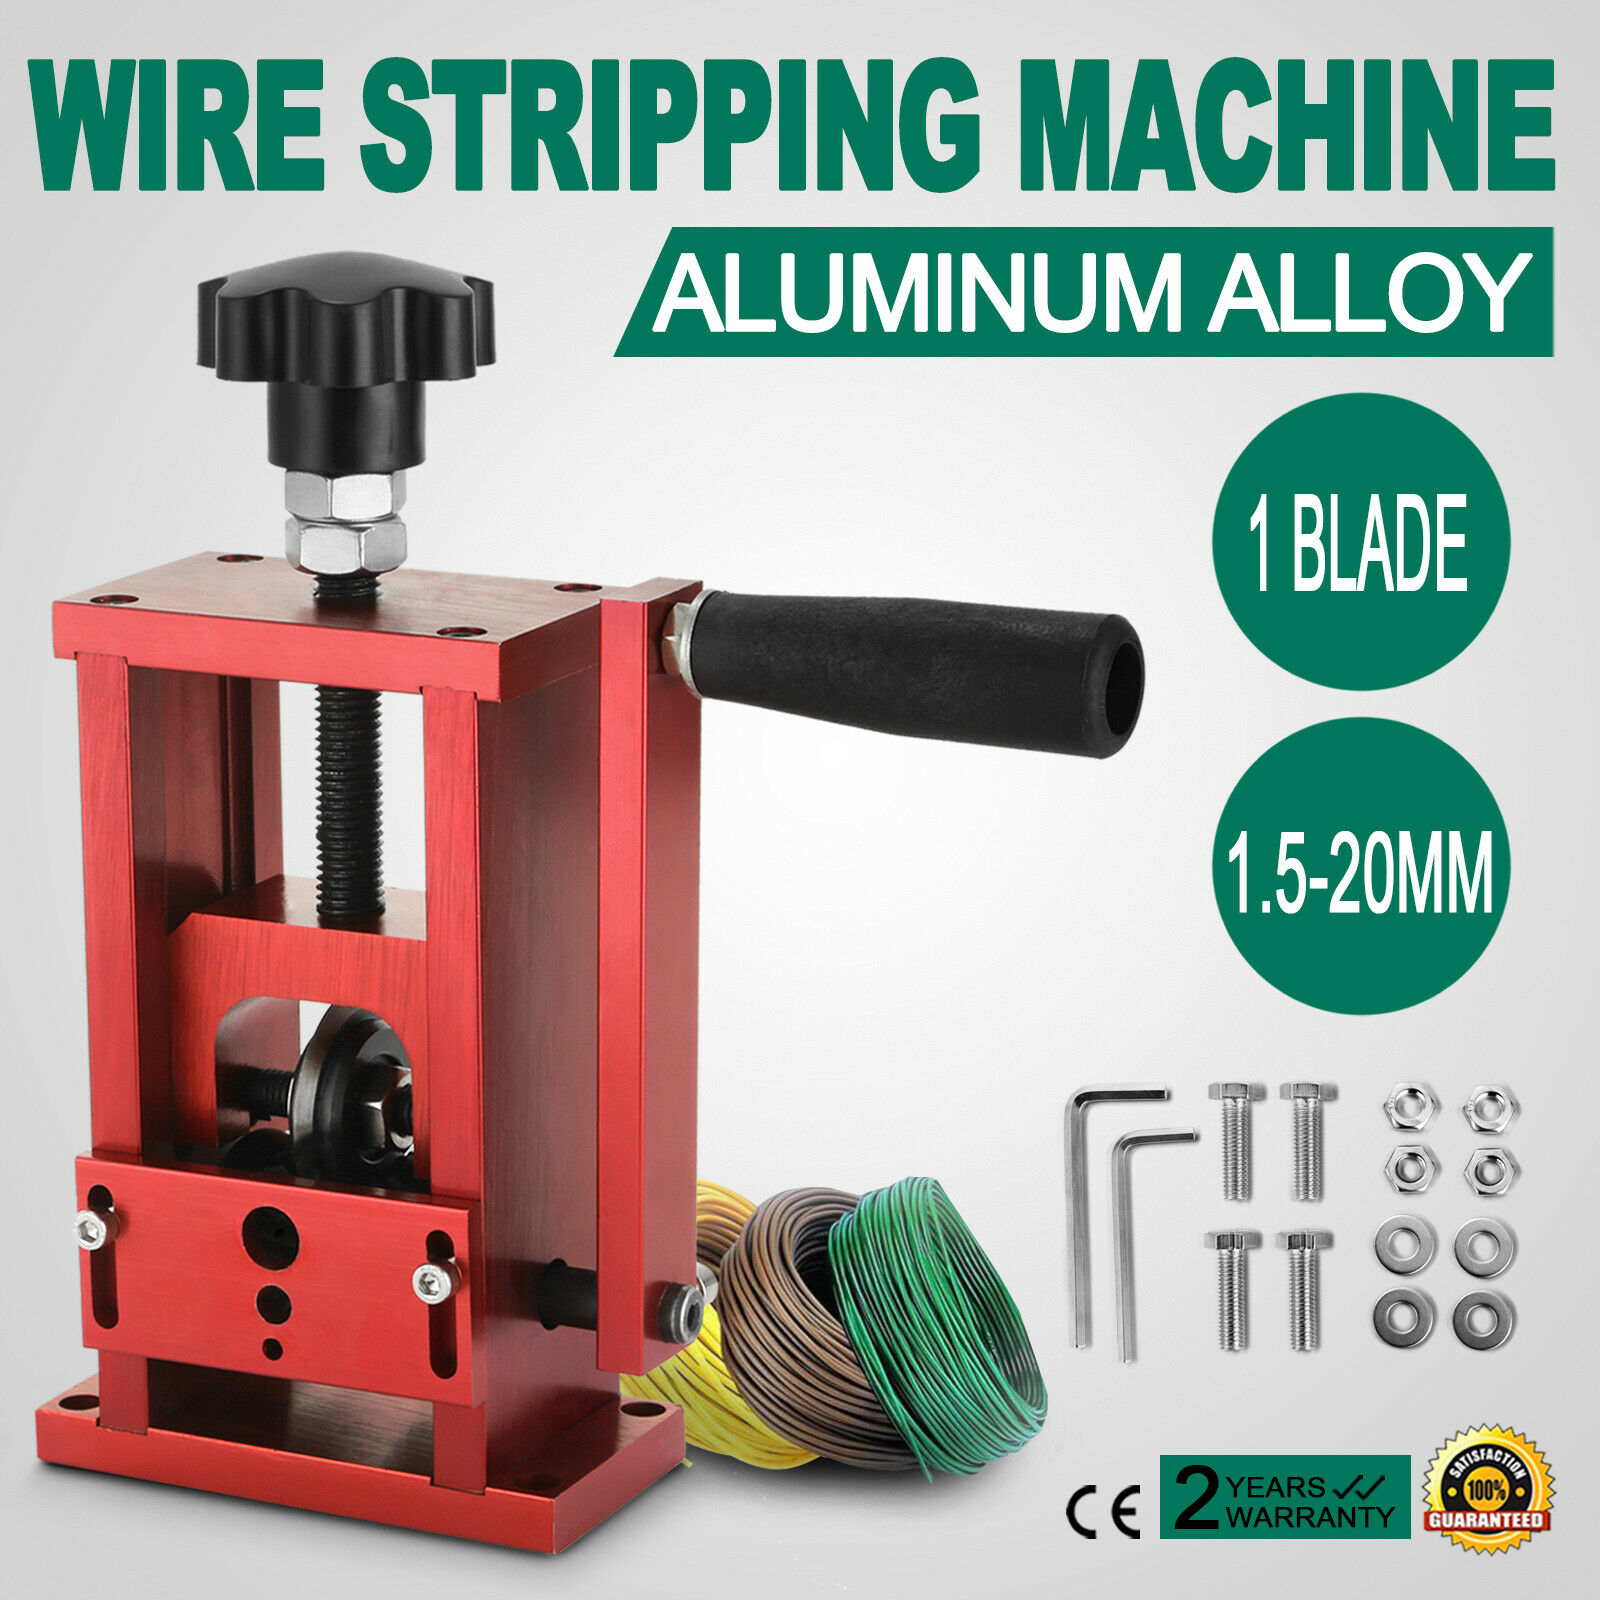 1.5mm-20mm Portable Wire Stripping Machine Hand Crank Cable Stripper Copper